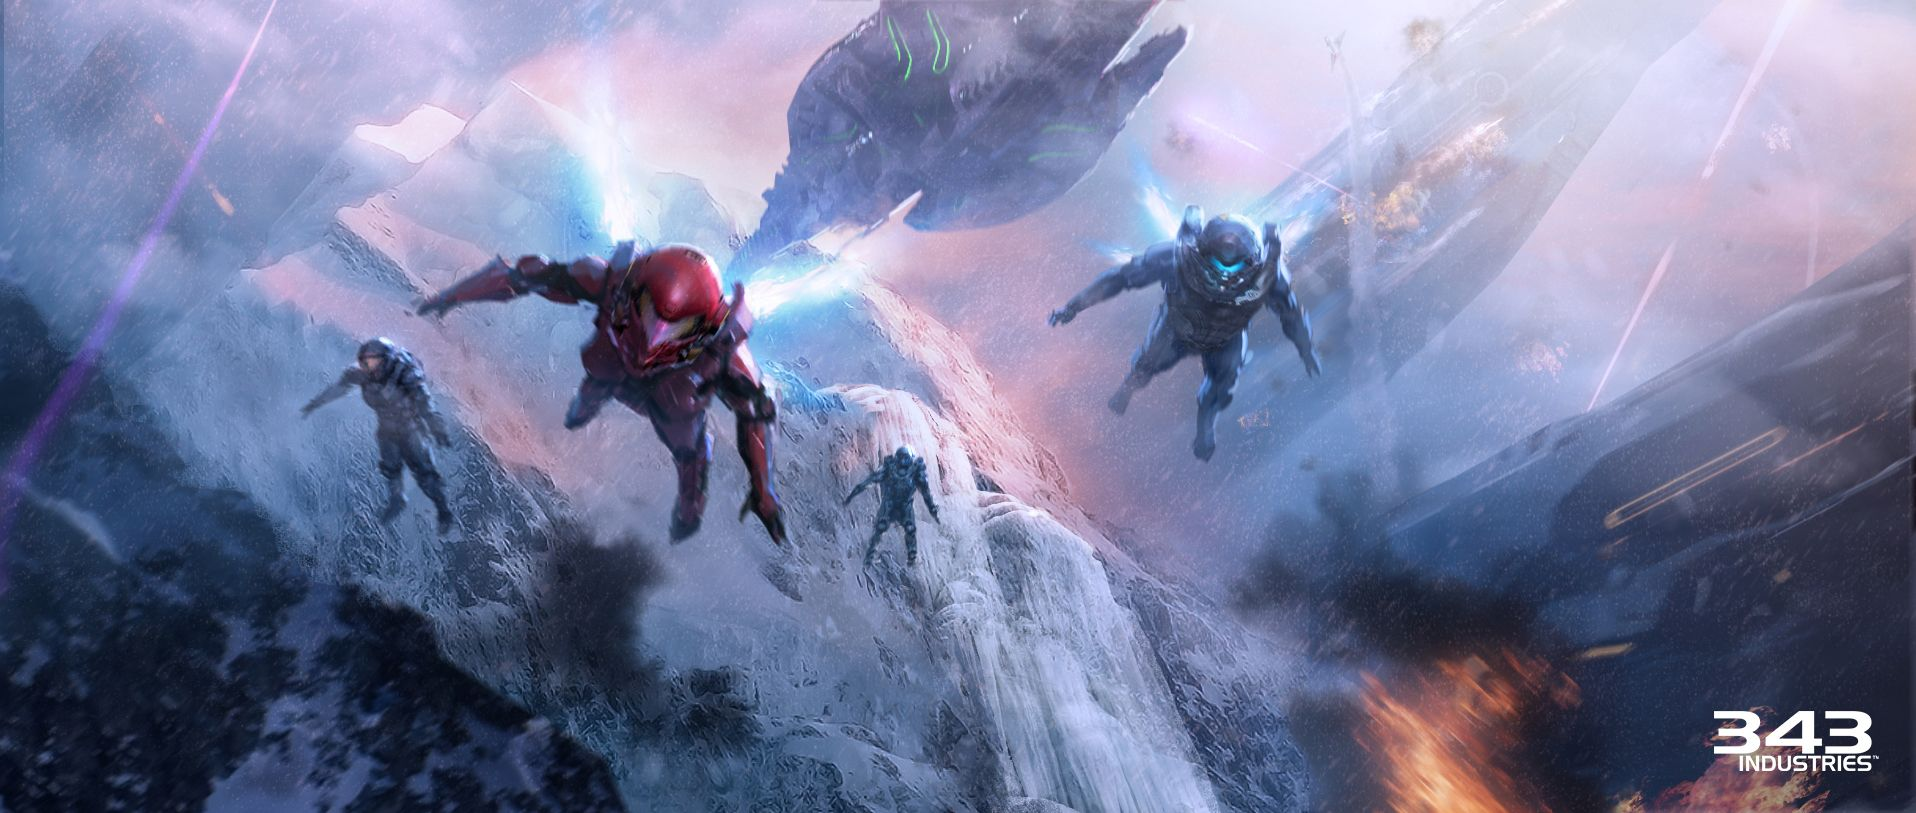 Halo 5 Guardians Wallpaper: Halo 5: Guardians Wallpaper And Background Image